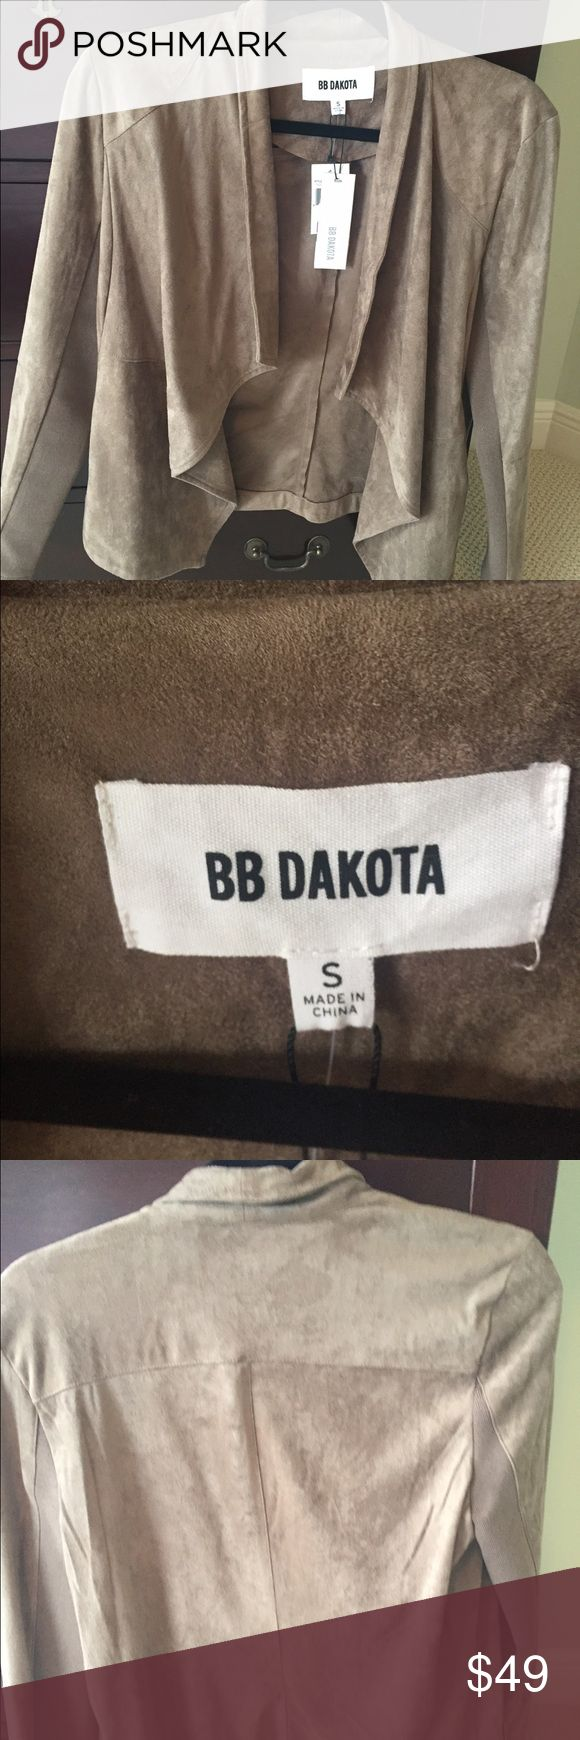 BB Dakota light weight brown wrap jacket Light weight jacket with tags on!  Pretty color brown and has spandex for more stretch and better fit.  Easy to pair with jeans.  No stains or rips.  Tags are still on❣ BB Dakota Jackets & Coats